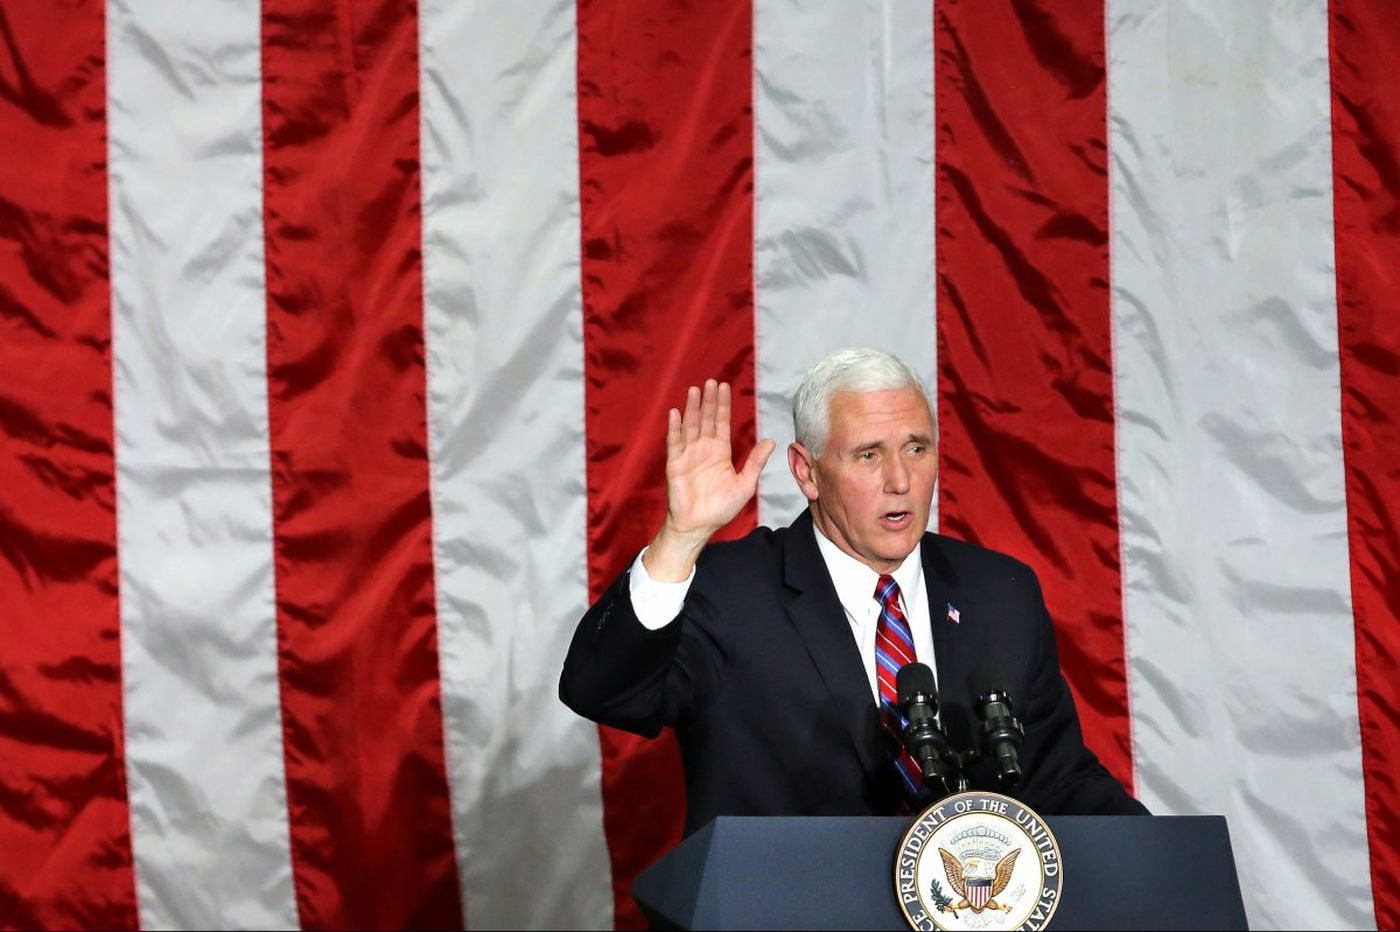 Pence emerging as leader of the GOP | Opinion